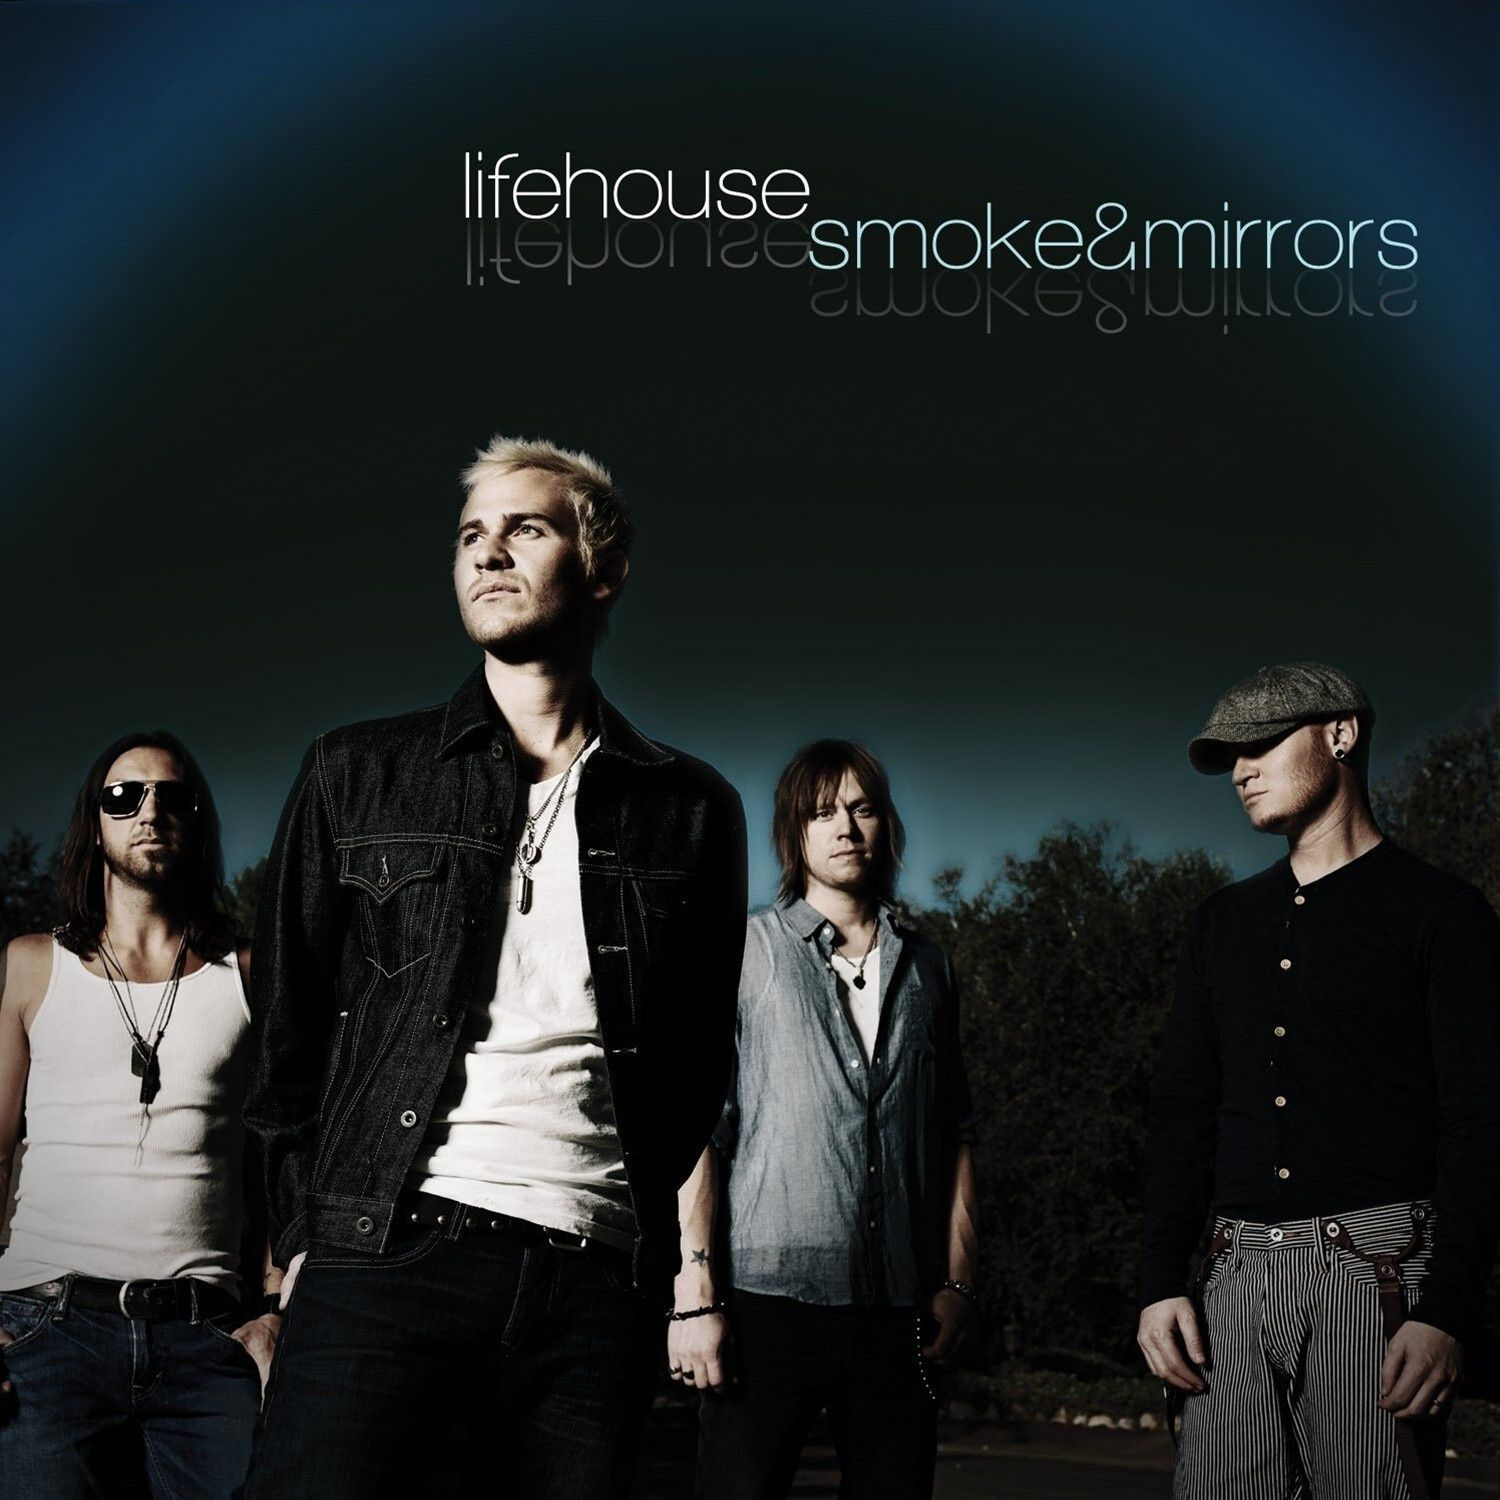 Lifehouse - Smoke & Mirrors album cover